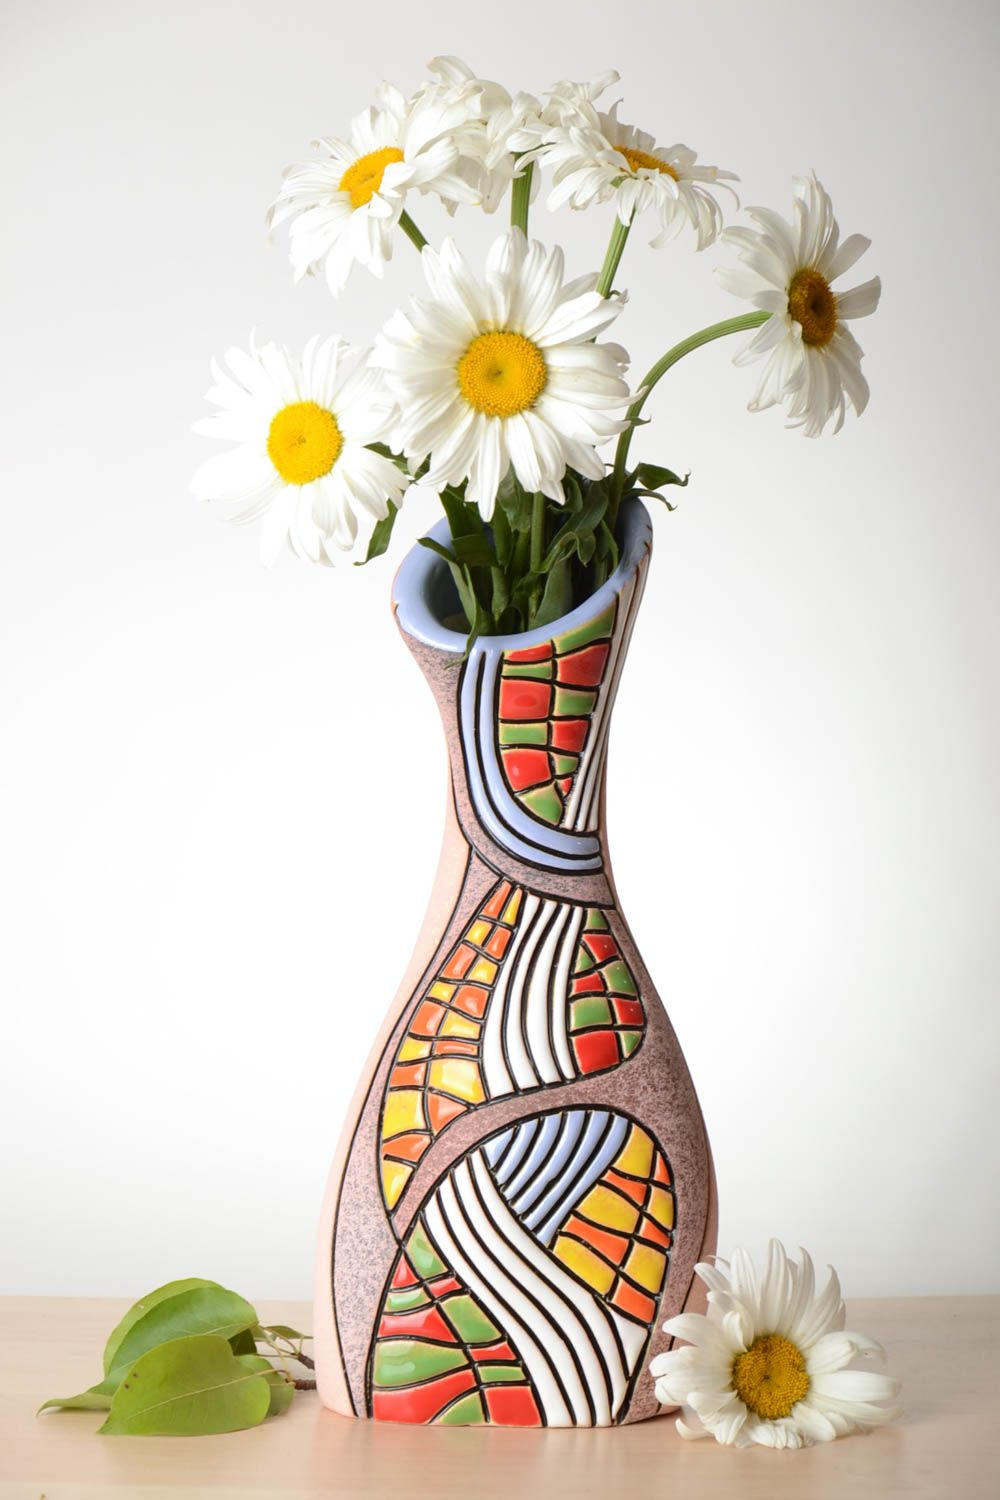 MADEHEART > Beautiful handmade ceramic flower vase pottery works ...